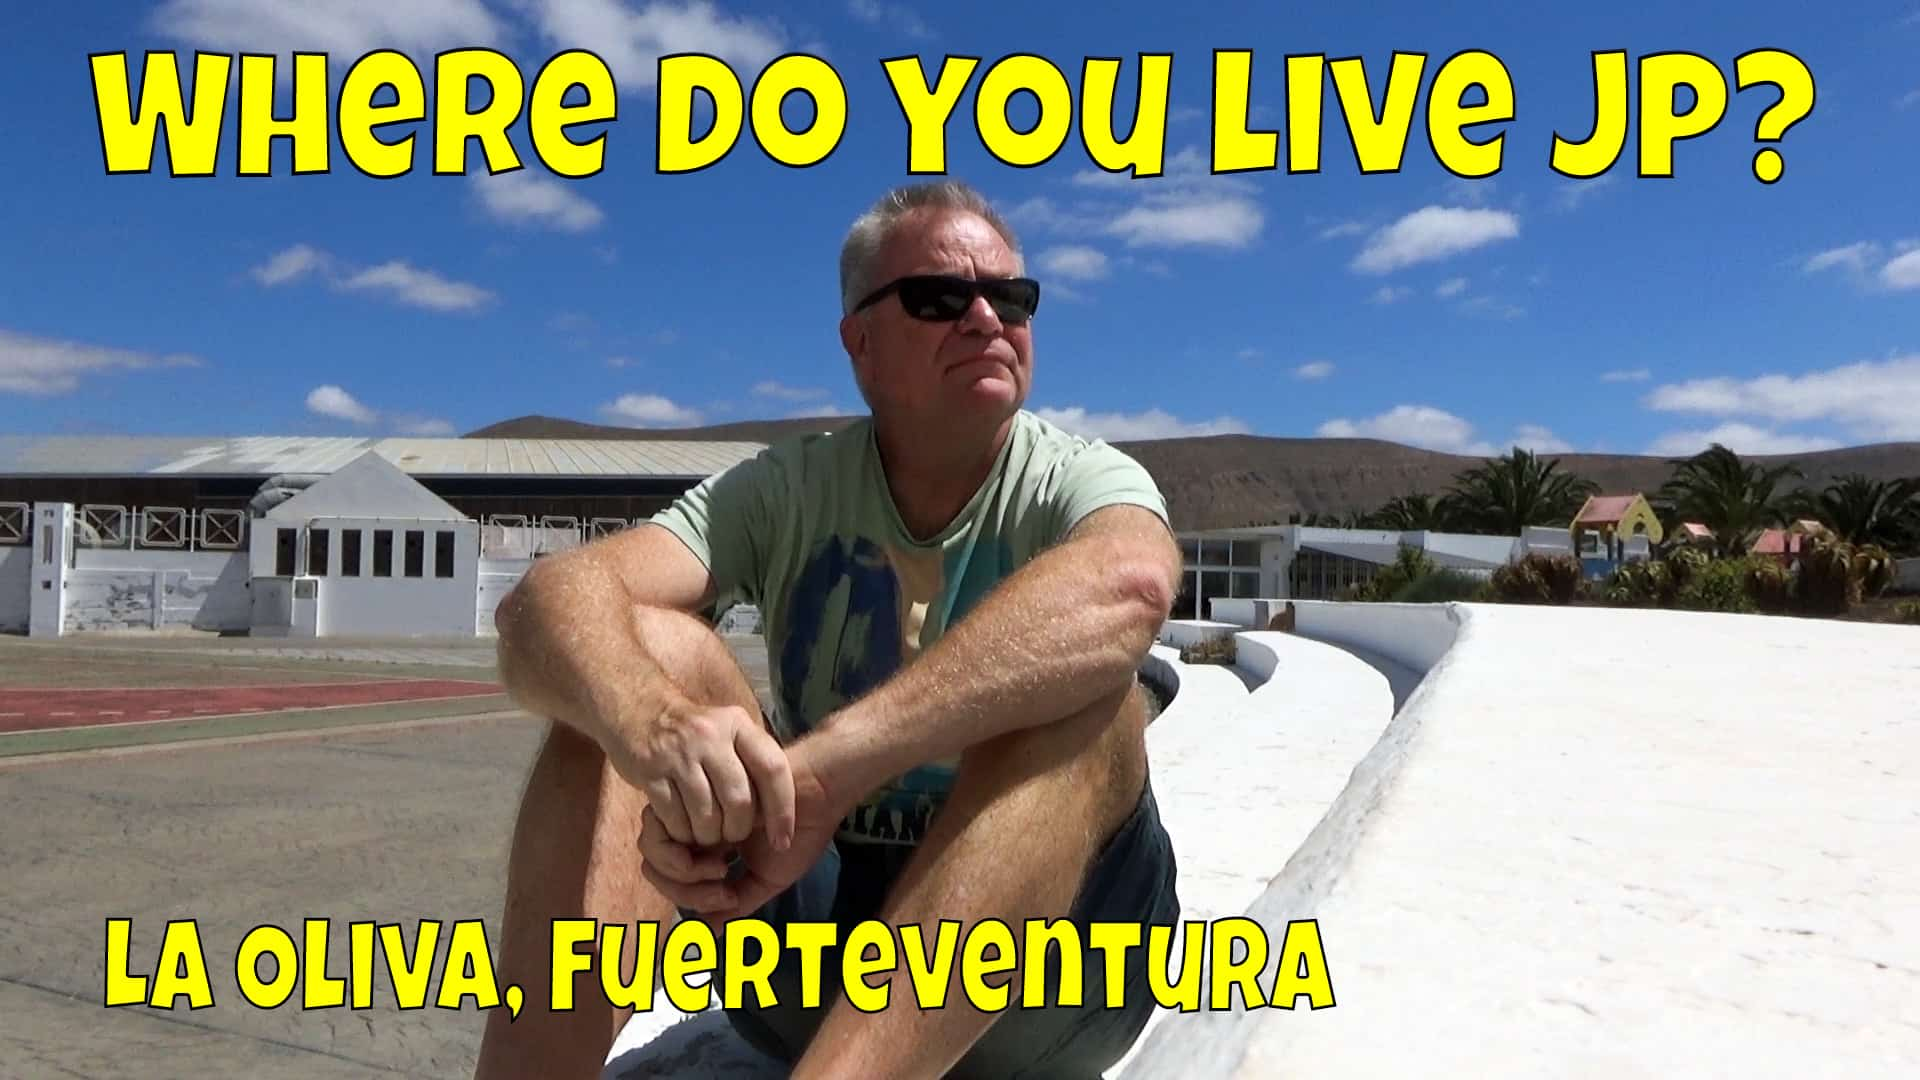 Where to live in Fuerteventura - La Oliva Fuerteventura